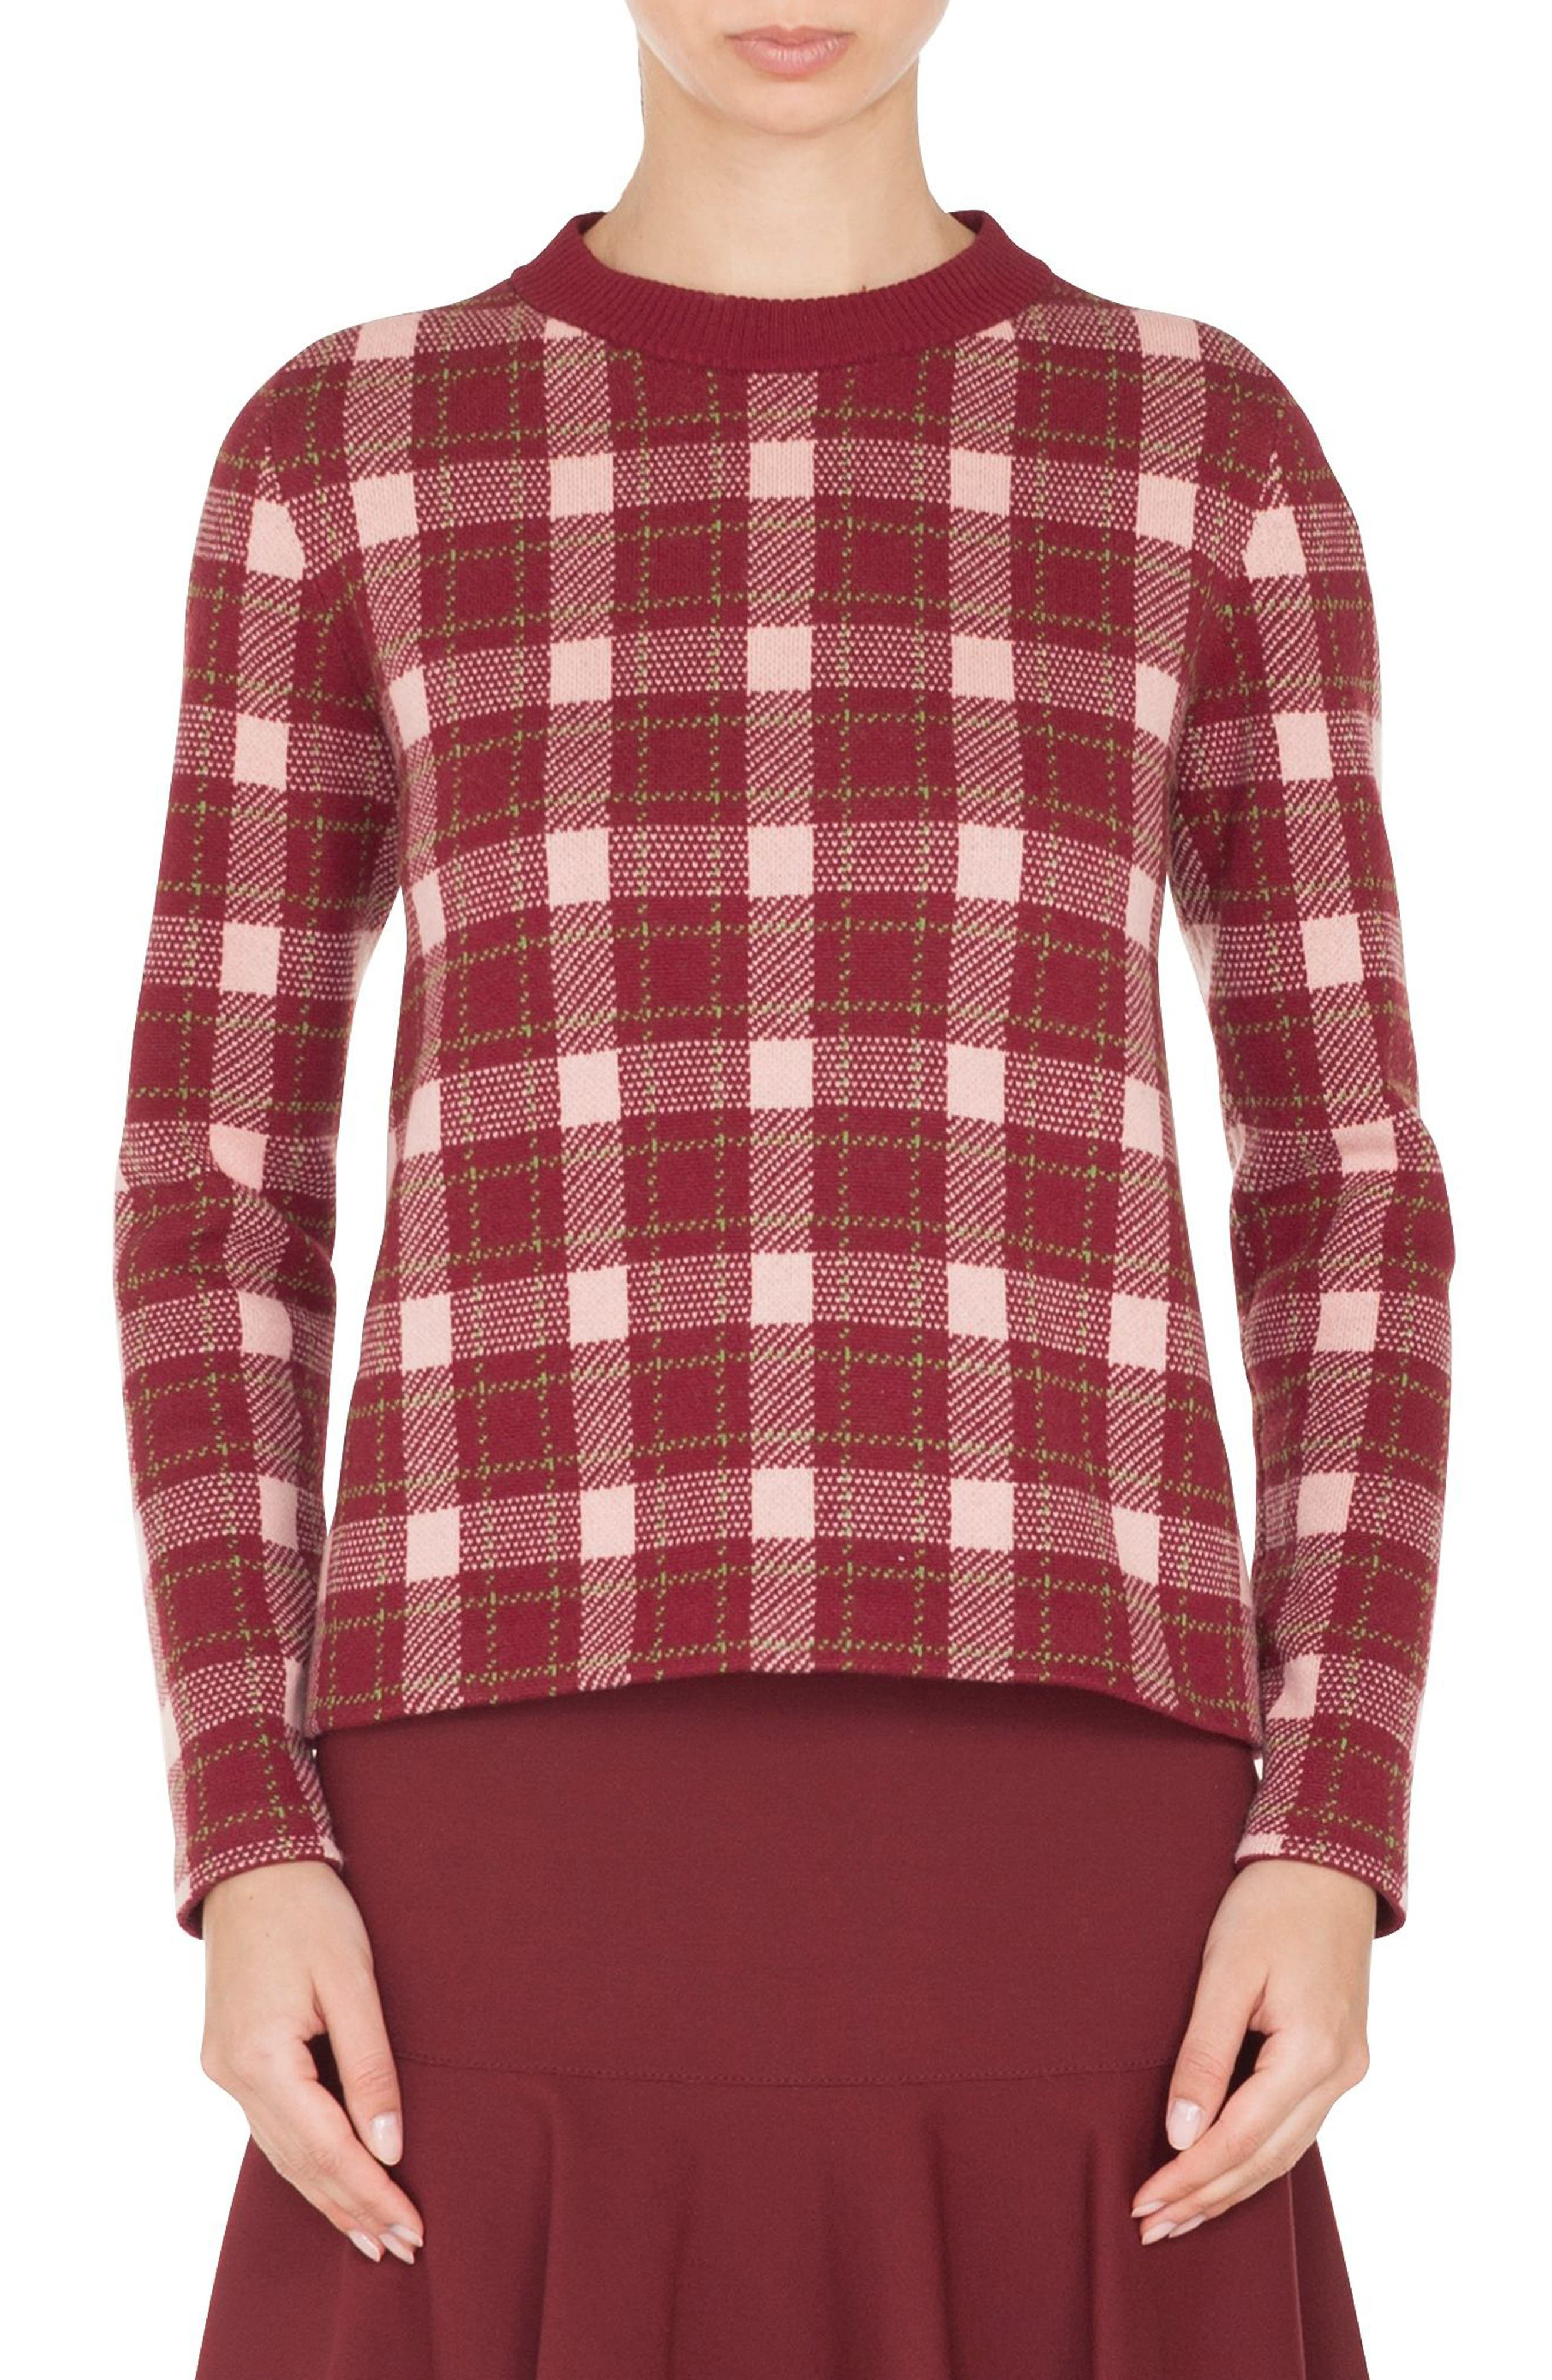 Brit Check Wool & Cashmere Pullover,                             Main thumbnail 1, color,                             BLUSH ROSE/ BURGUNDY